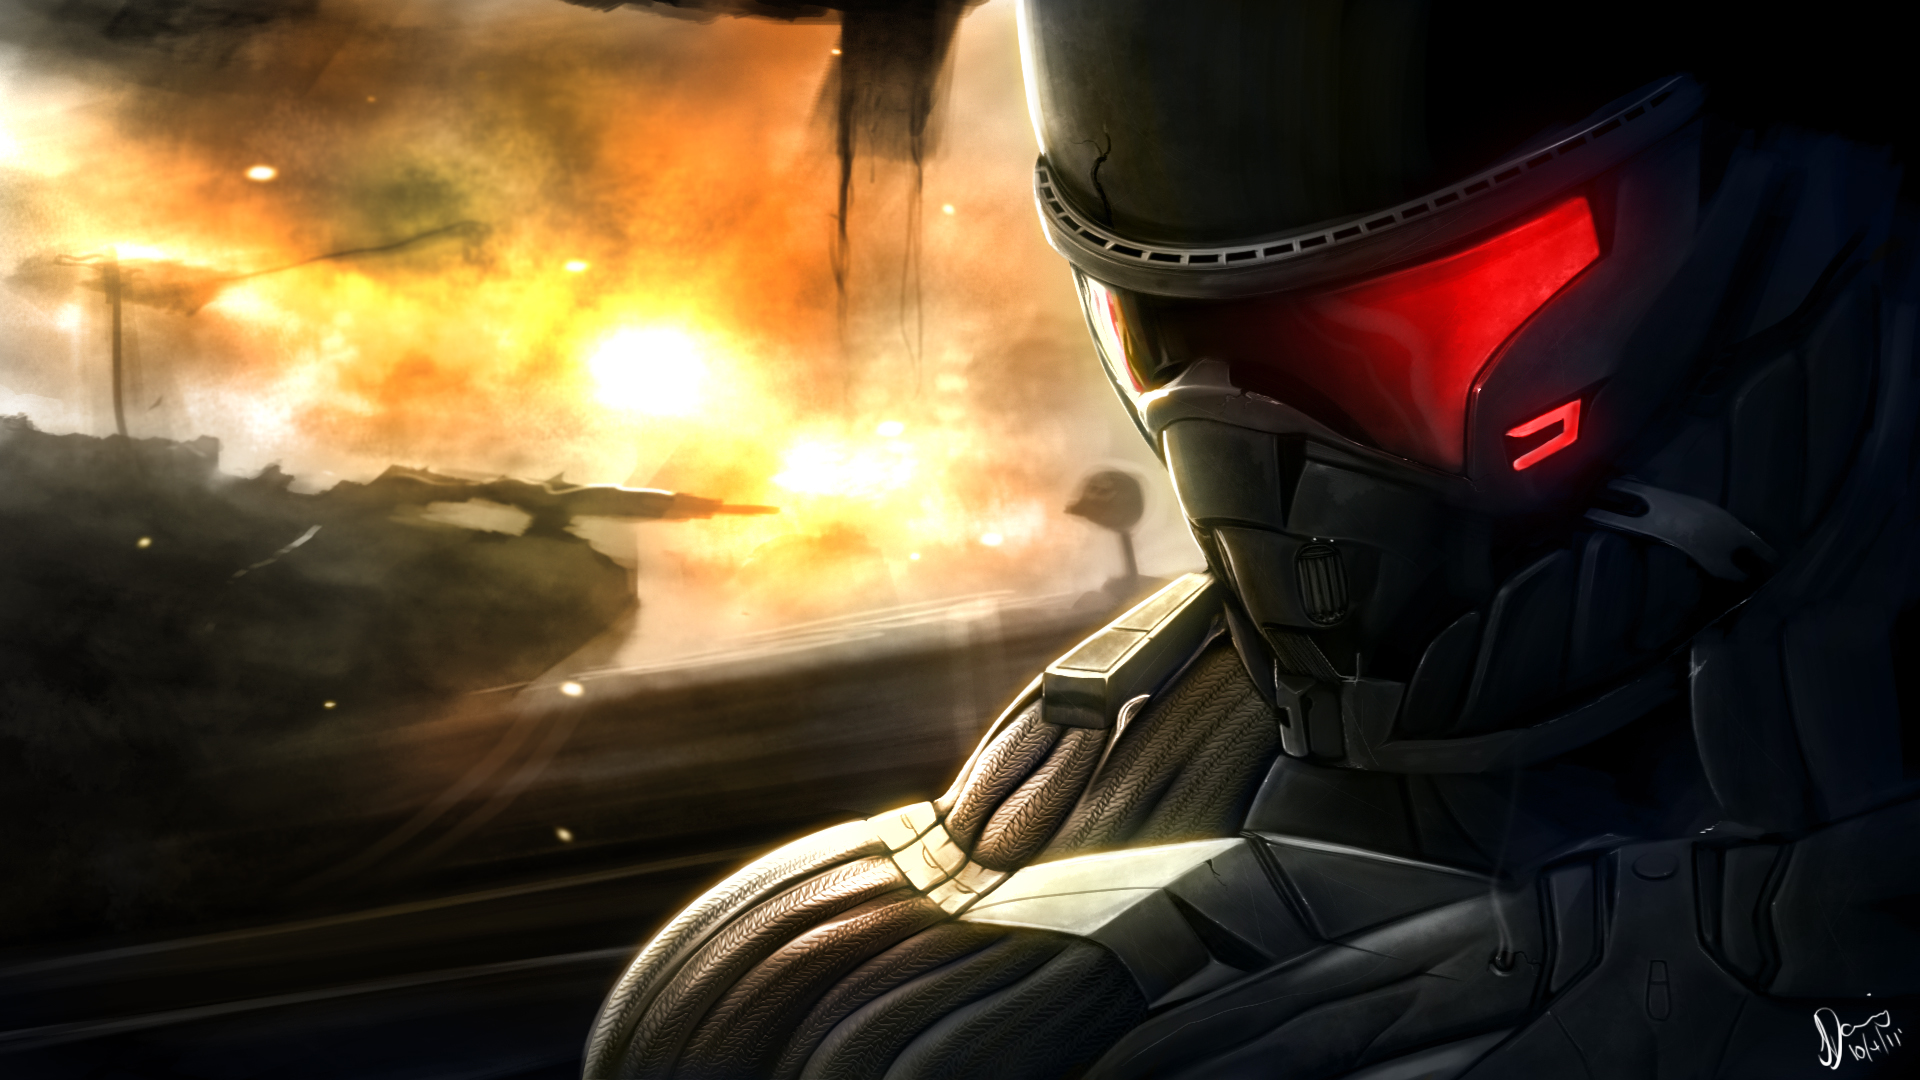 Crysis 2 Fan Art 1002.06 Kb